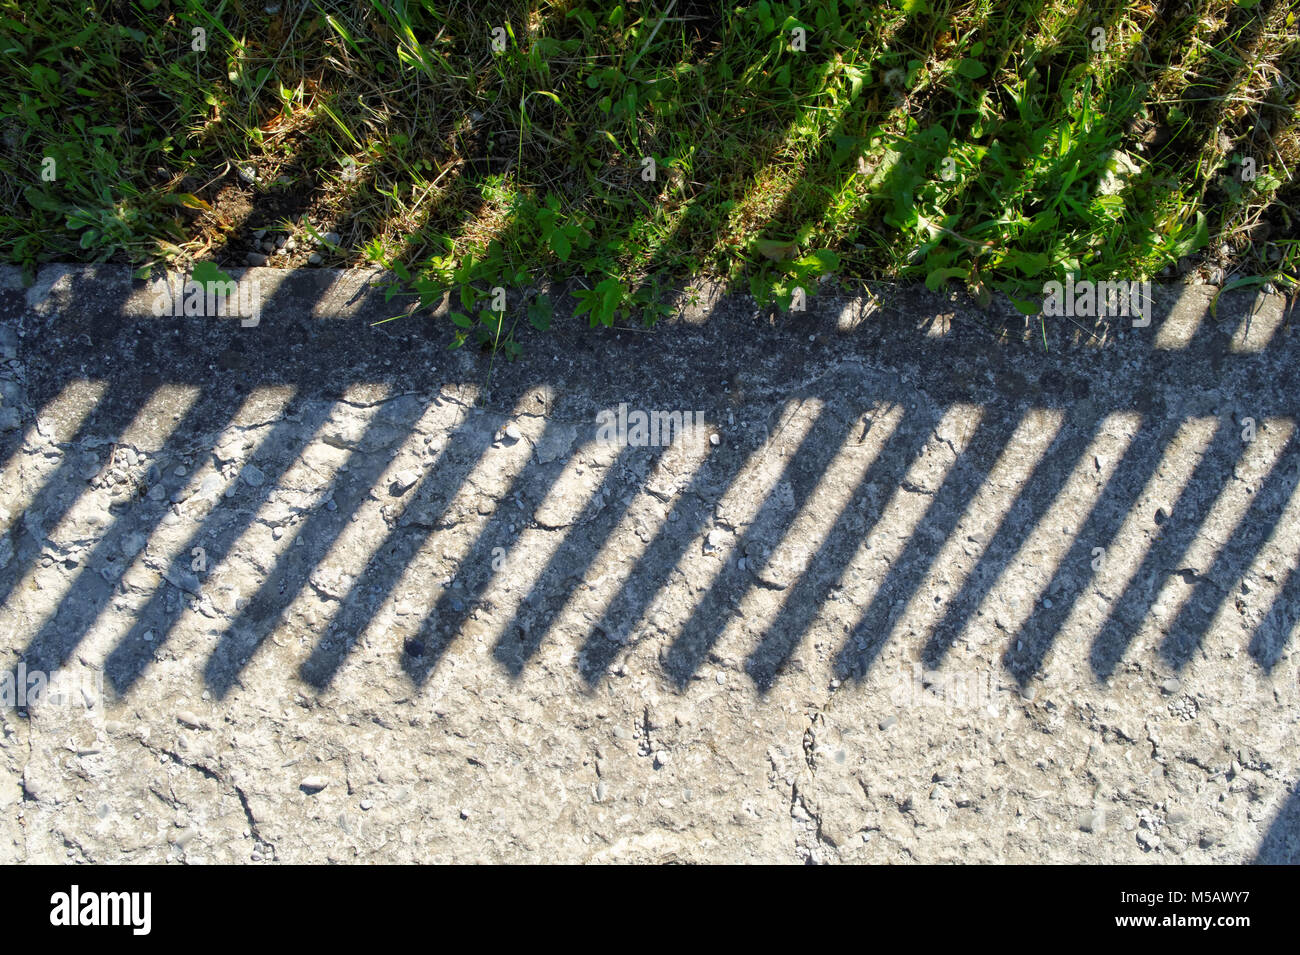 shadow of the wooden fence along the country concrete road - Stock Image